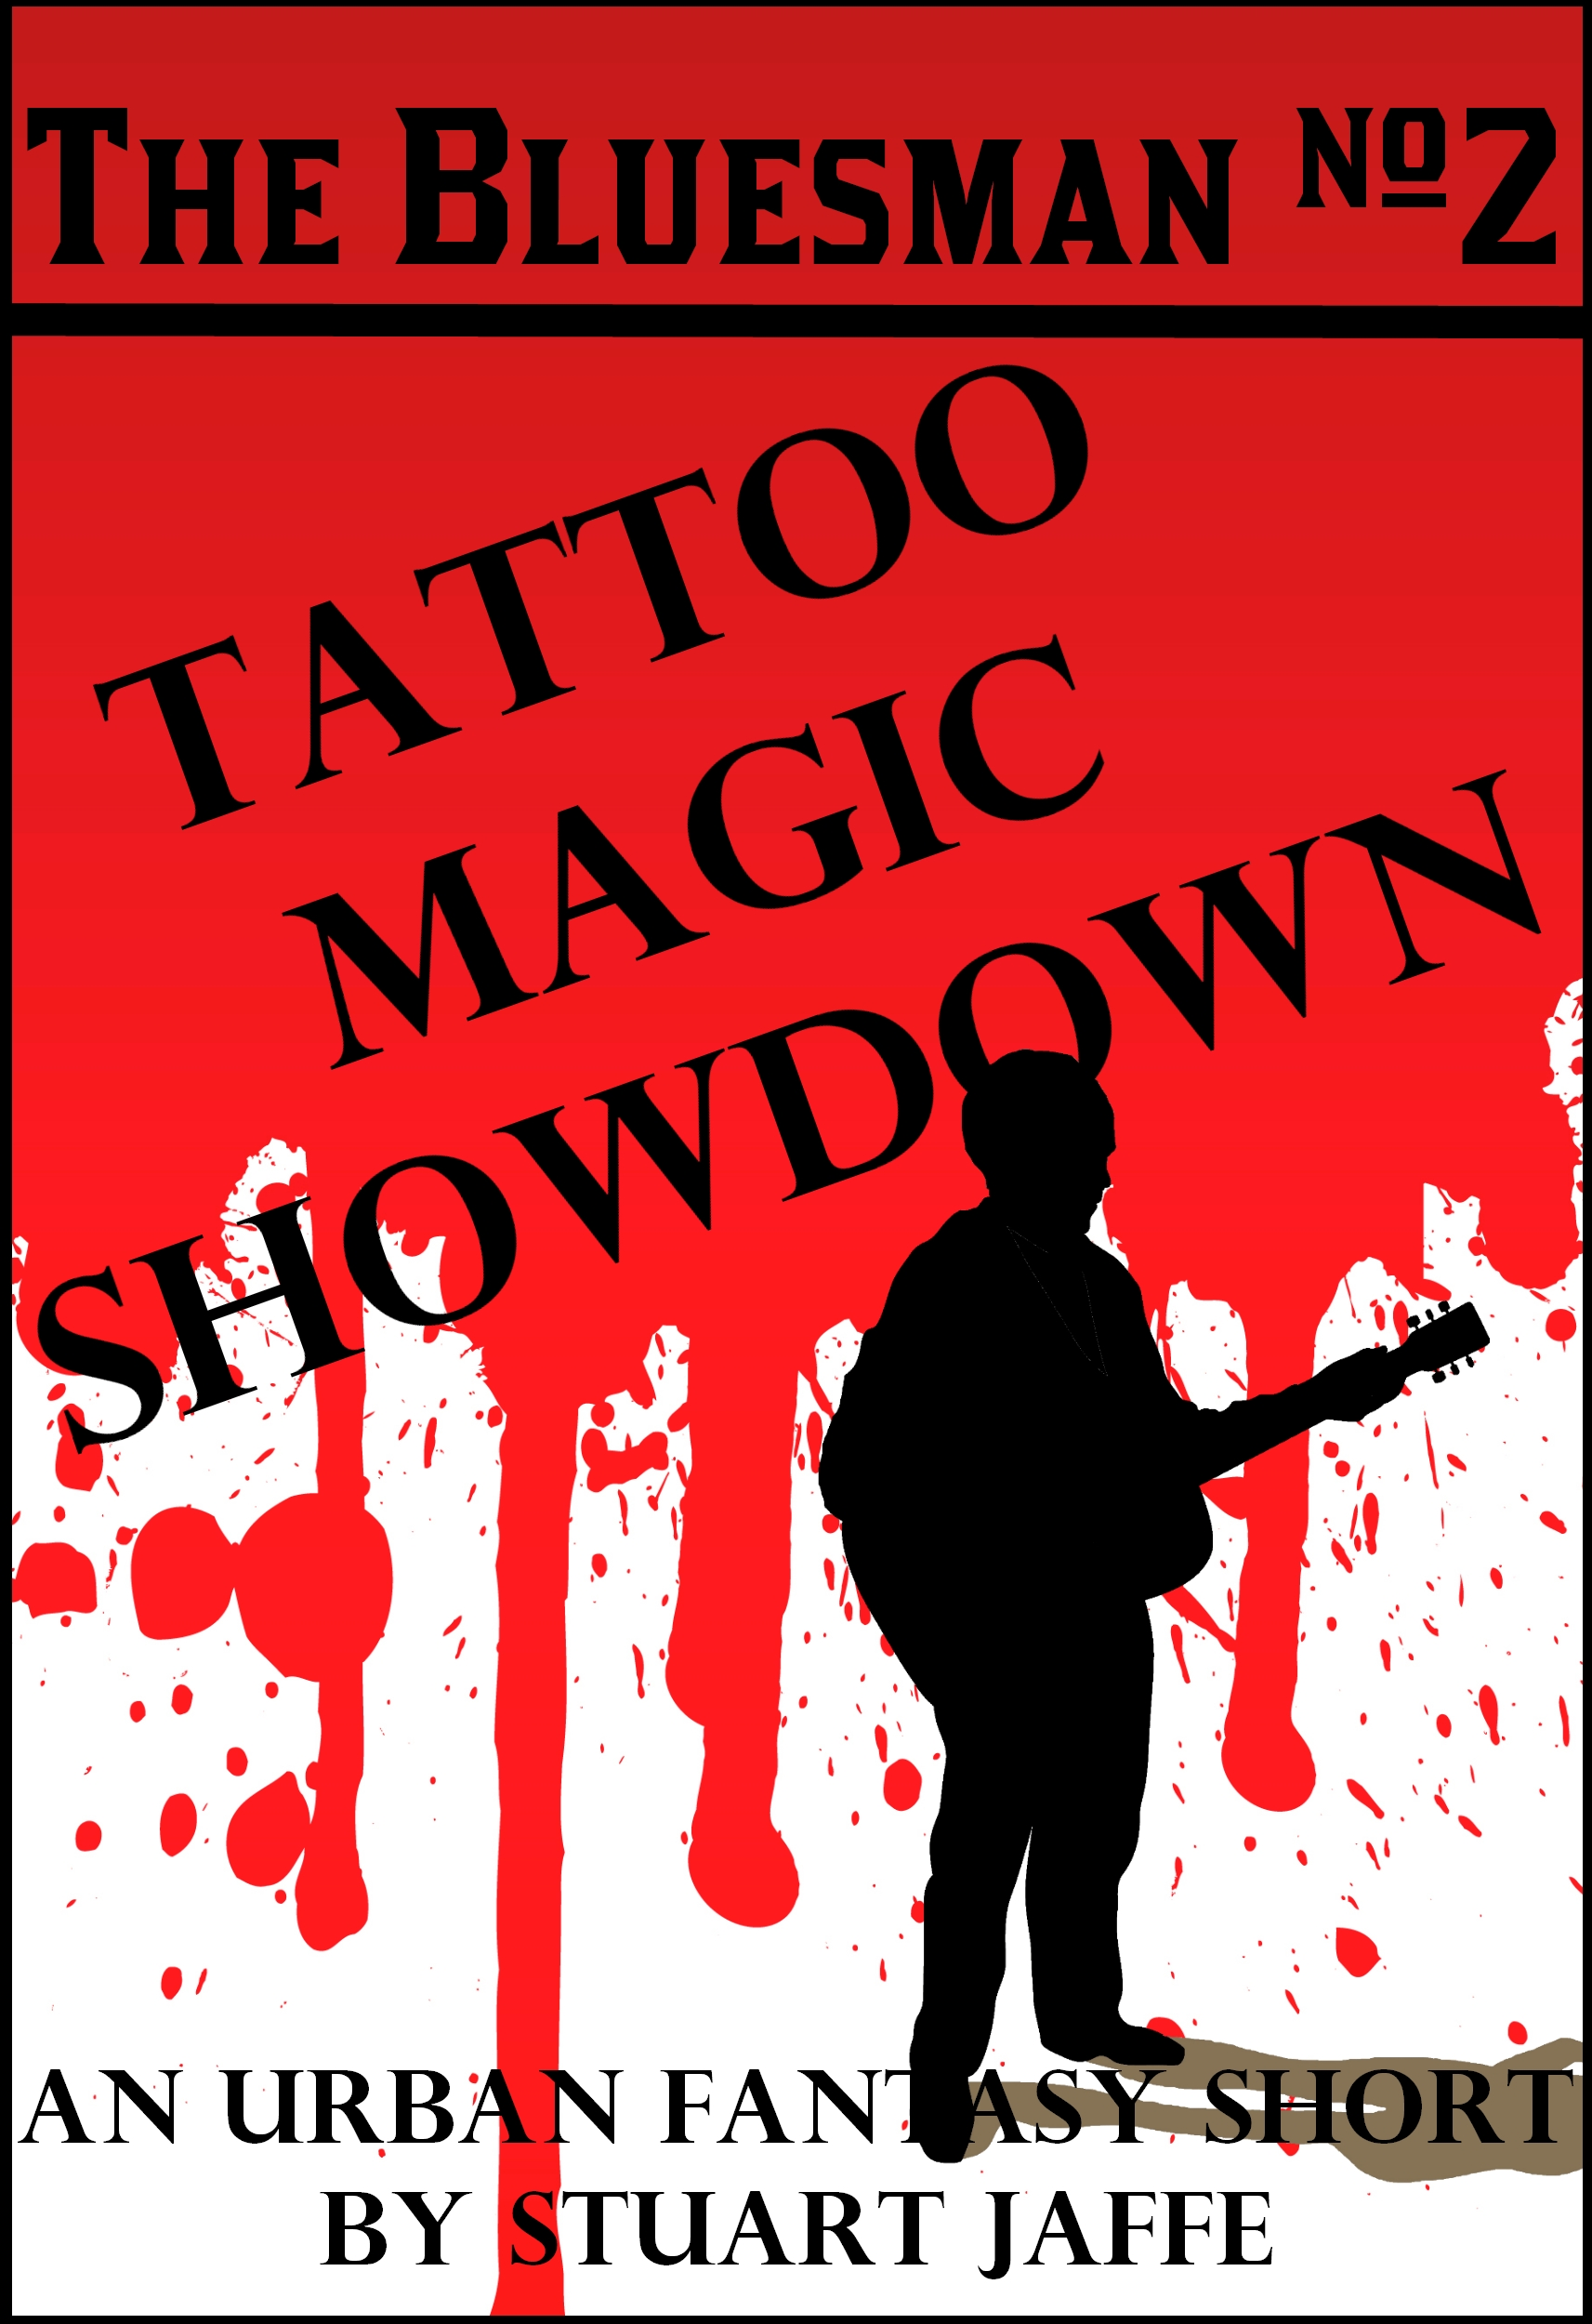 Tattoo Magic Showdown By: Stuart Jaffe